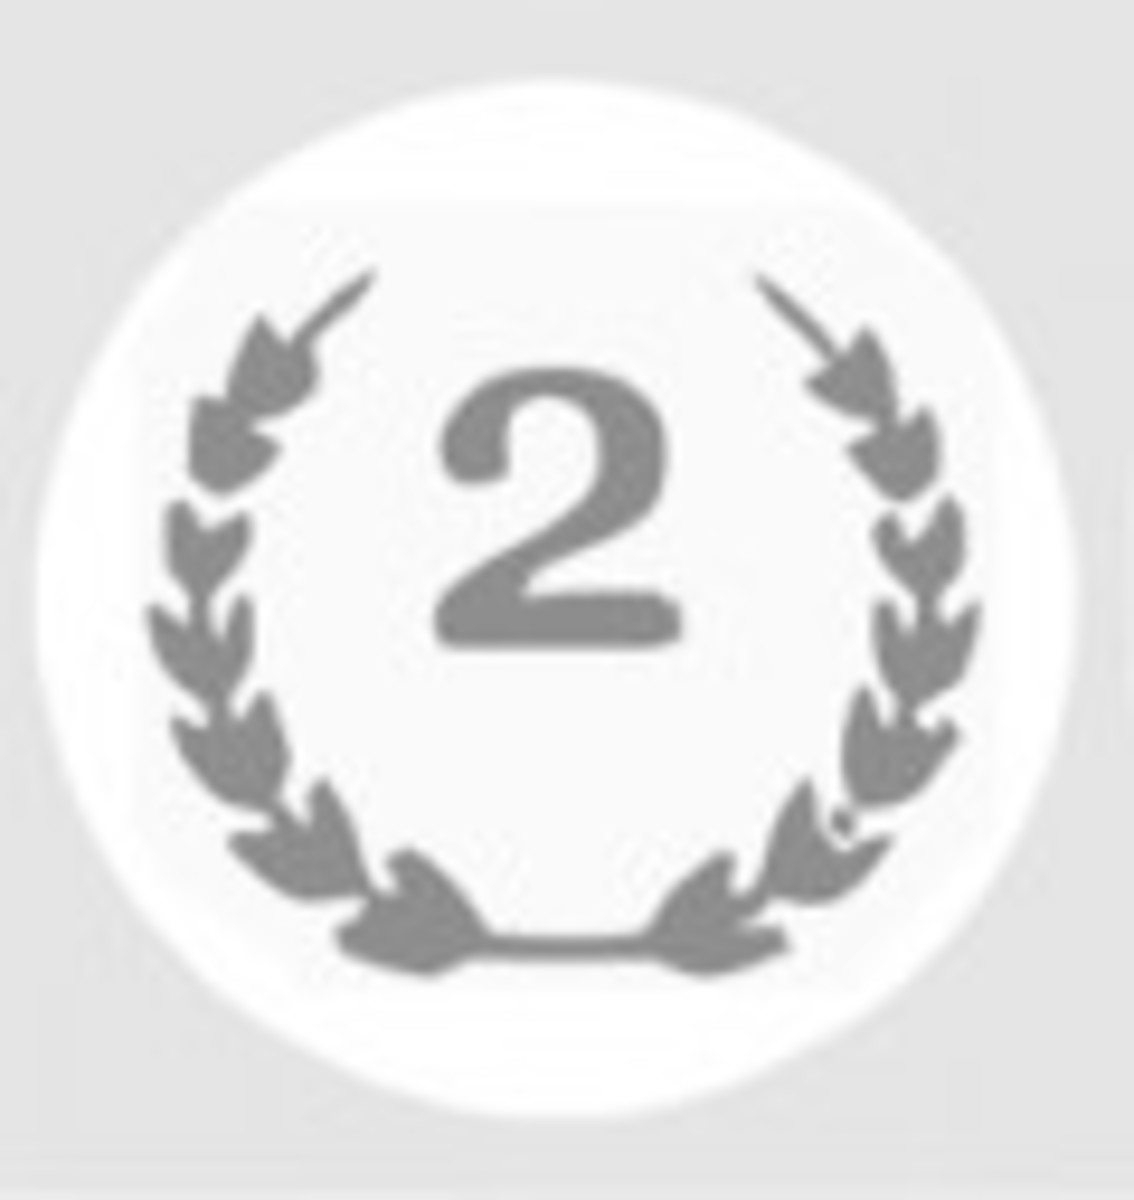 2 Years on HubPages Accolade